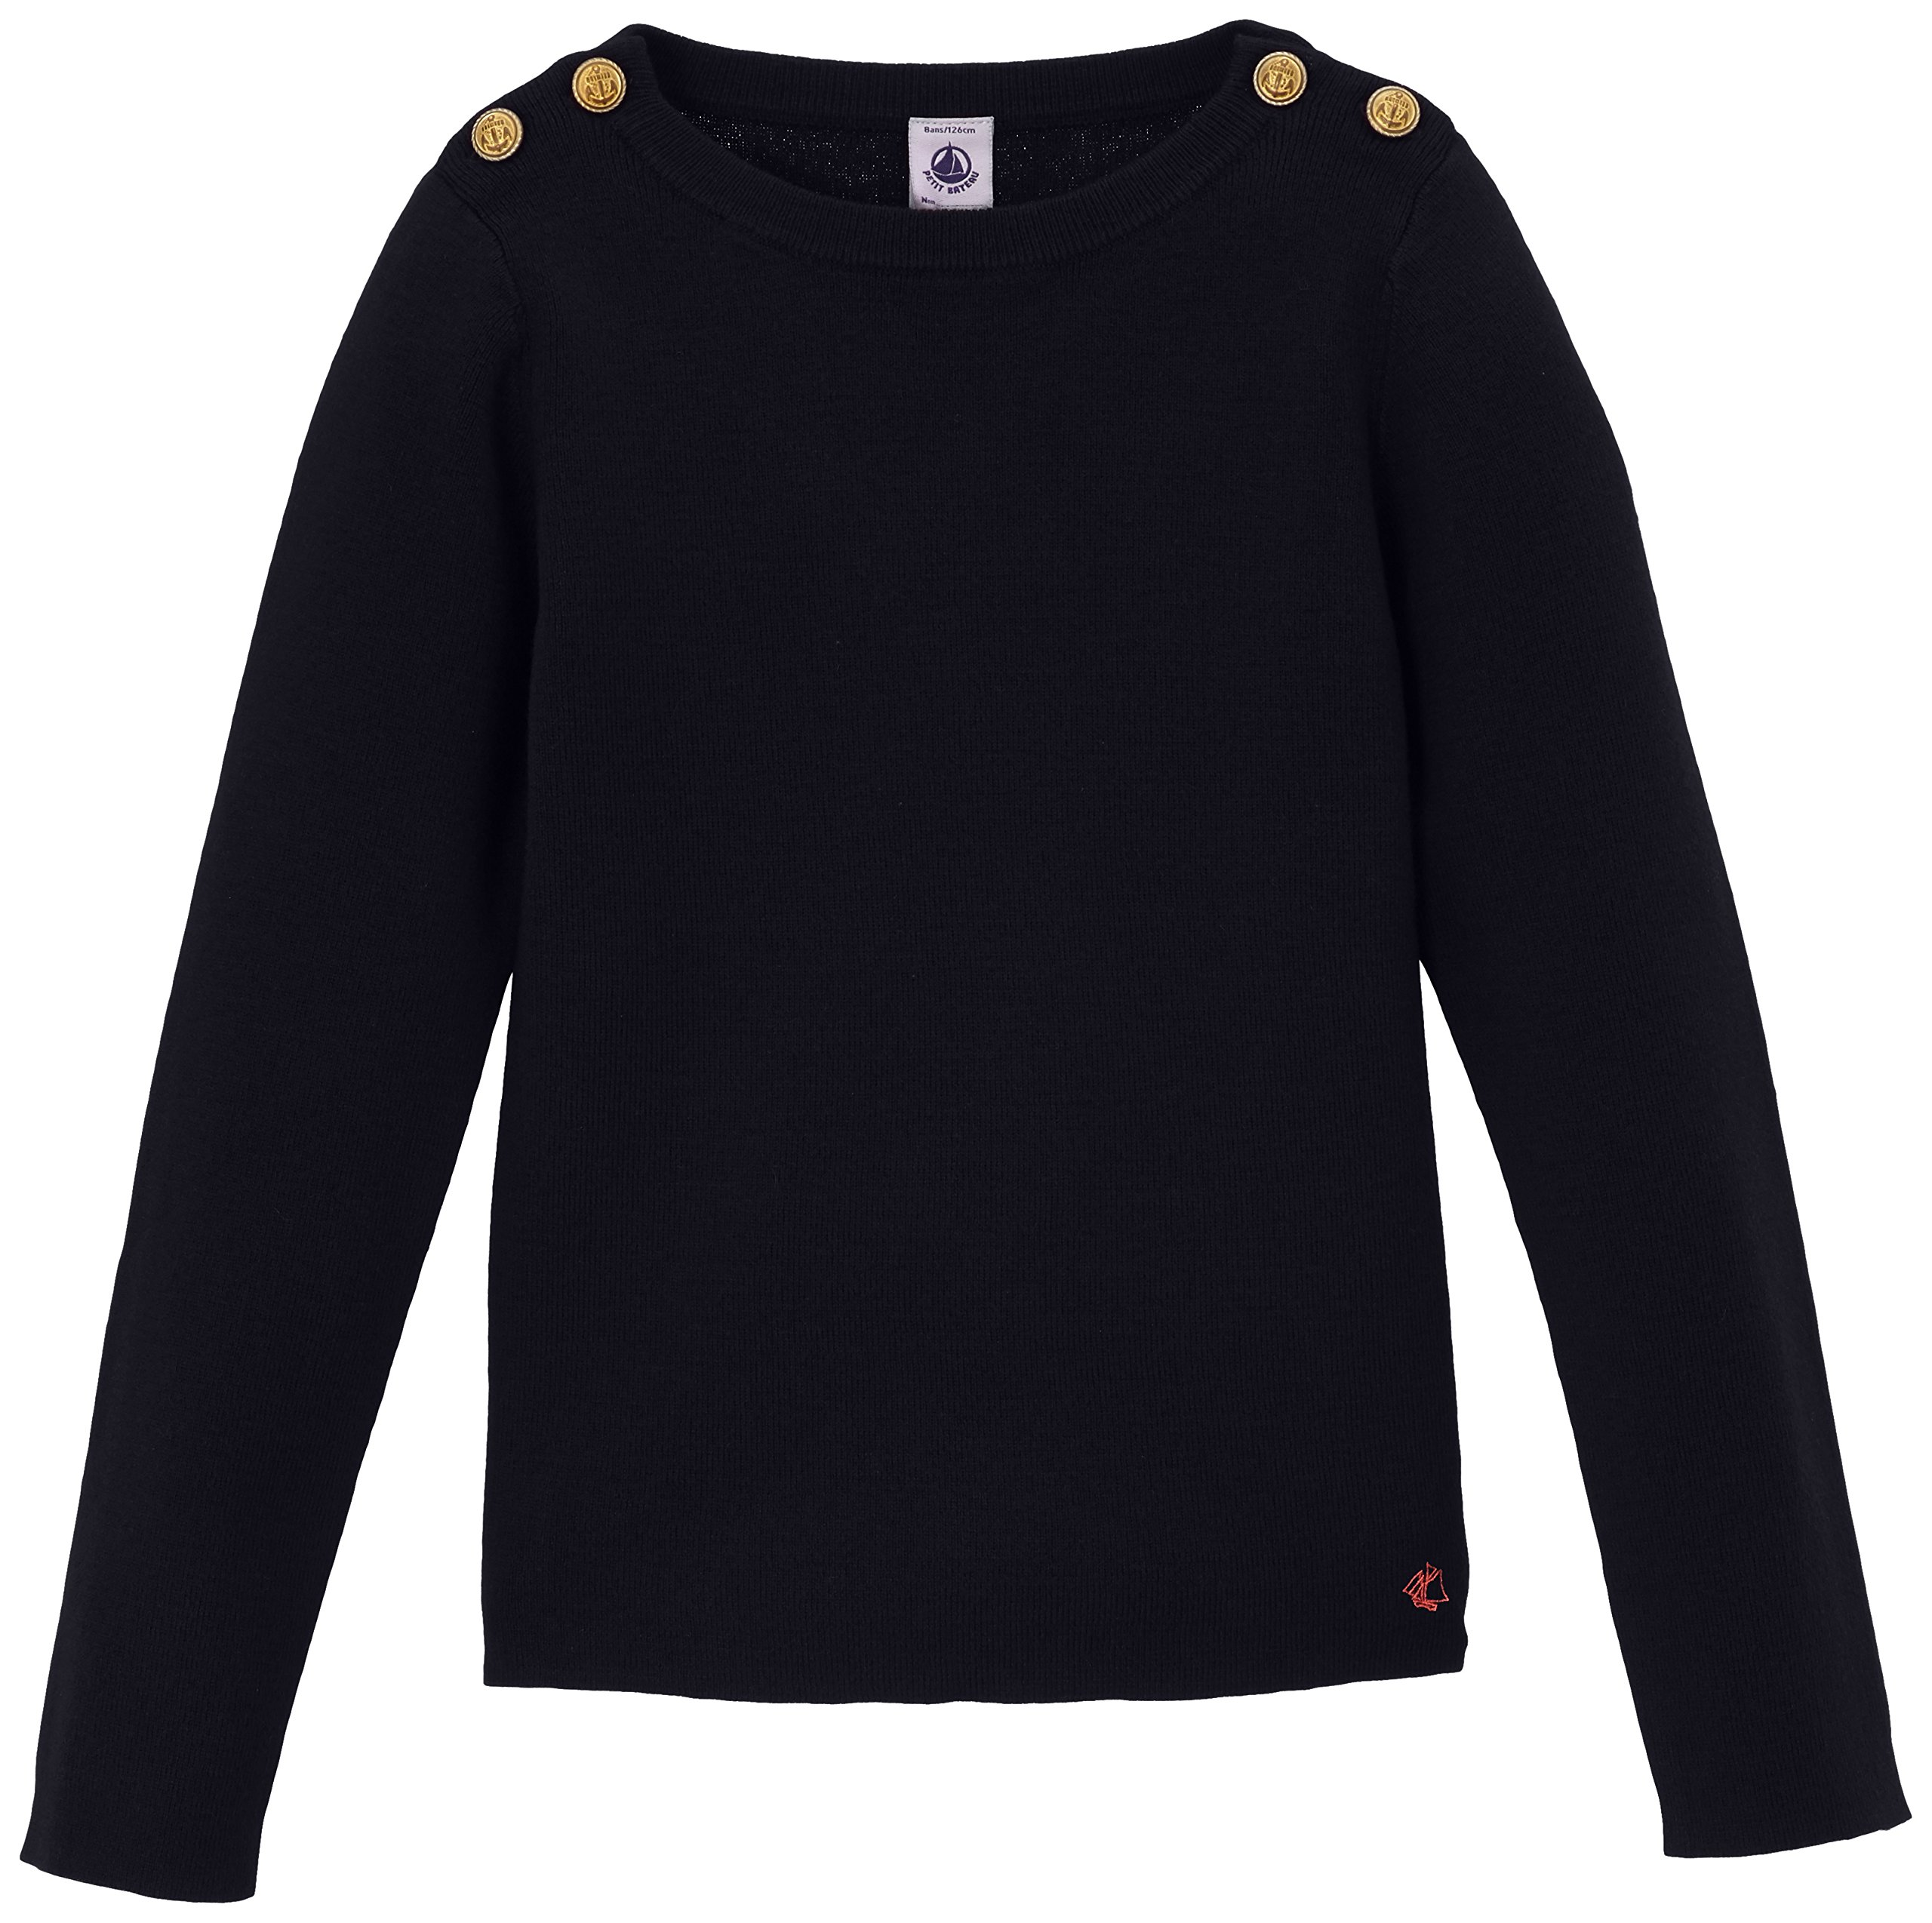 Petit Bateau Girl's Sweater with Gold Buttons, 10A